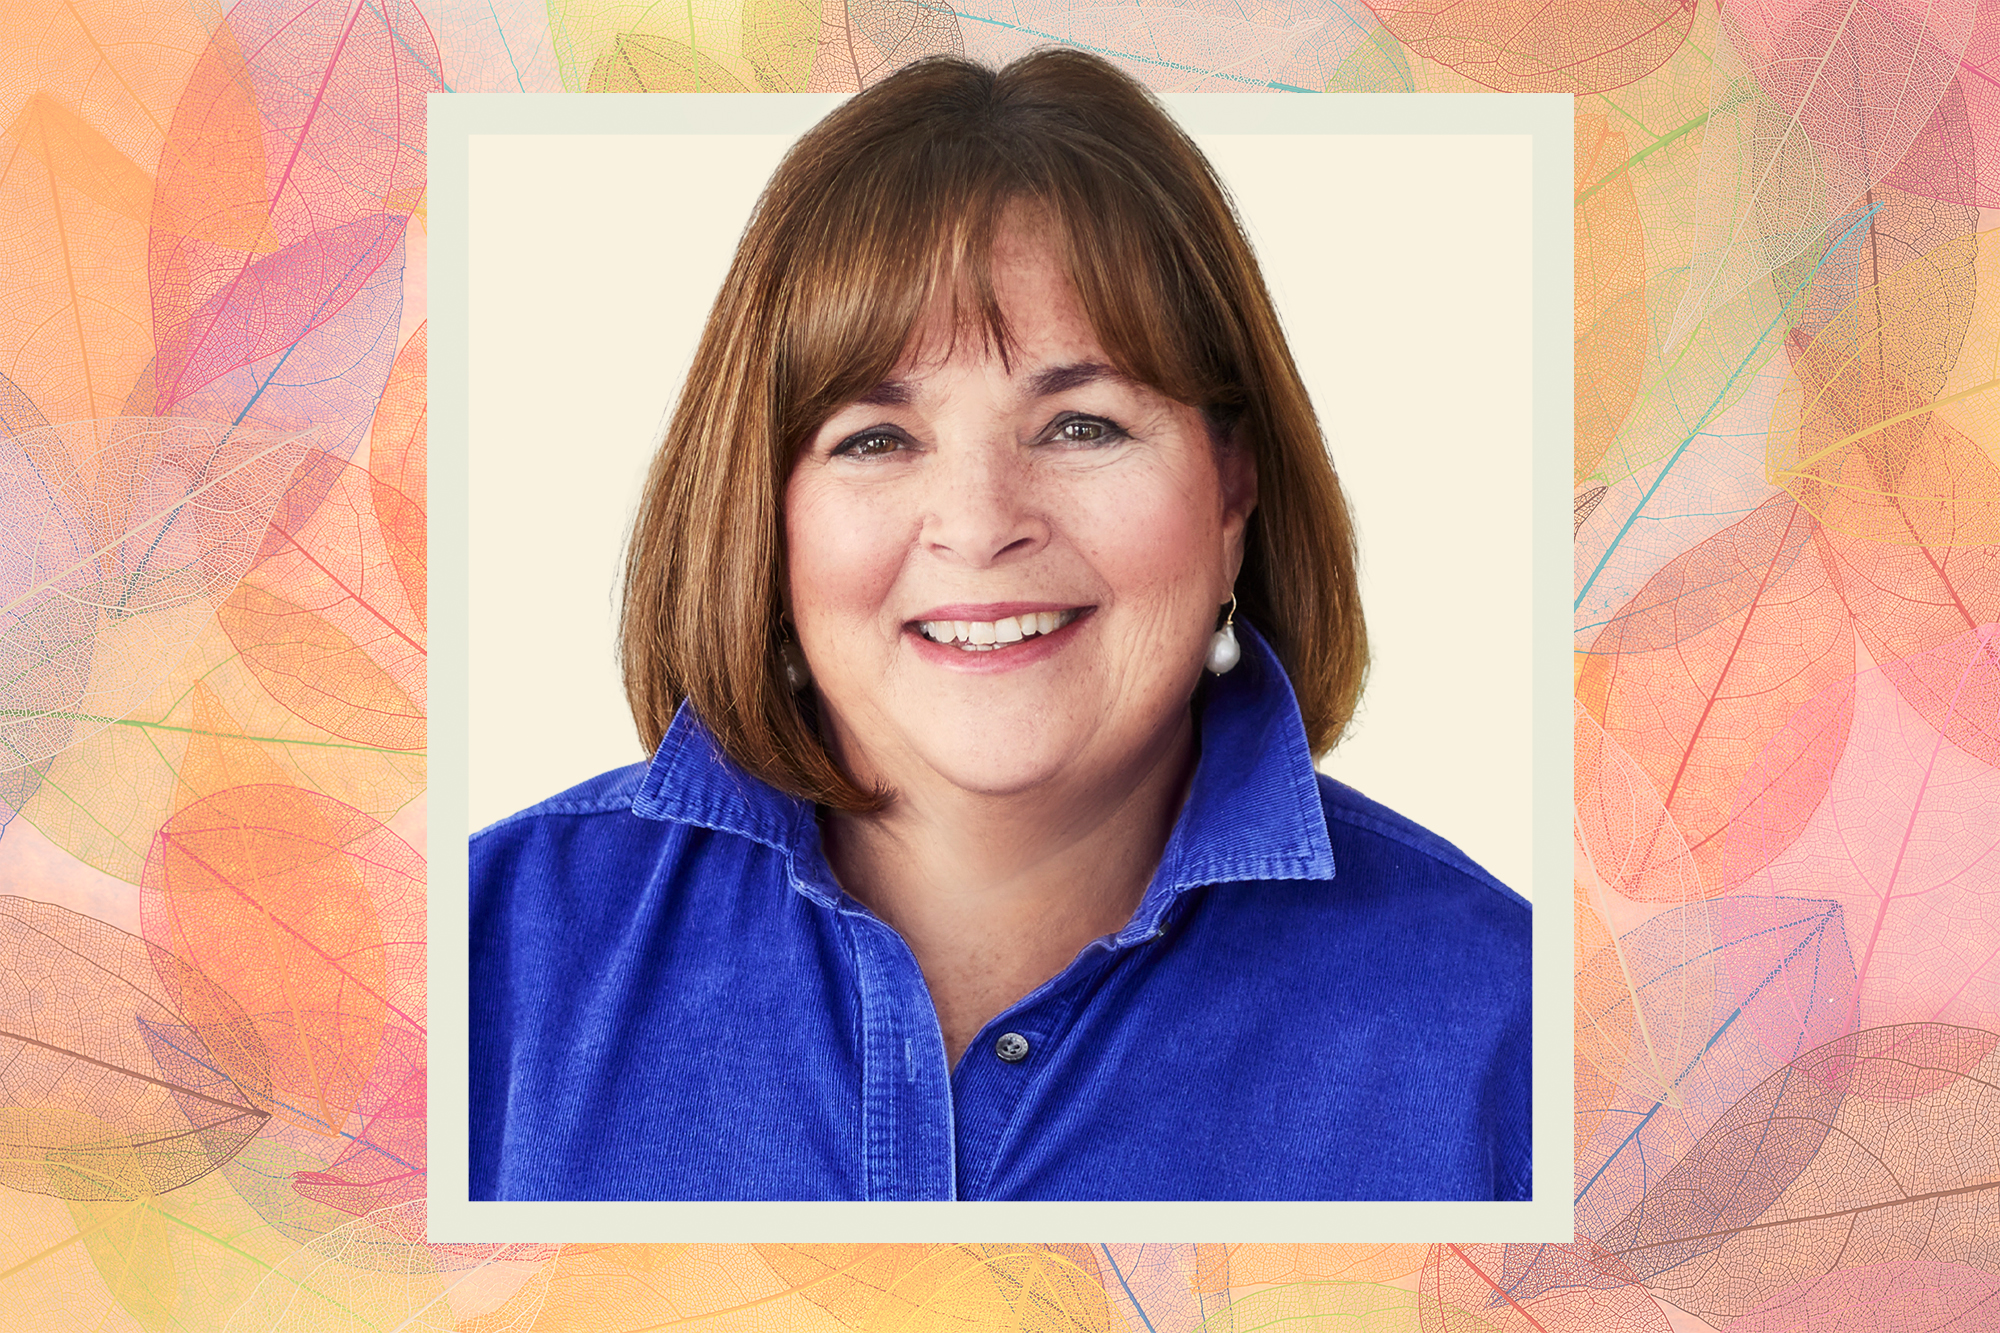 A portrait of Ina Garten on a fall themed background